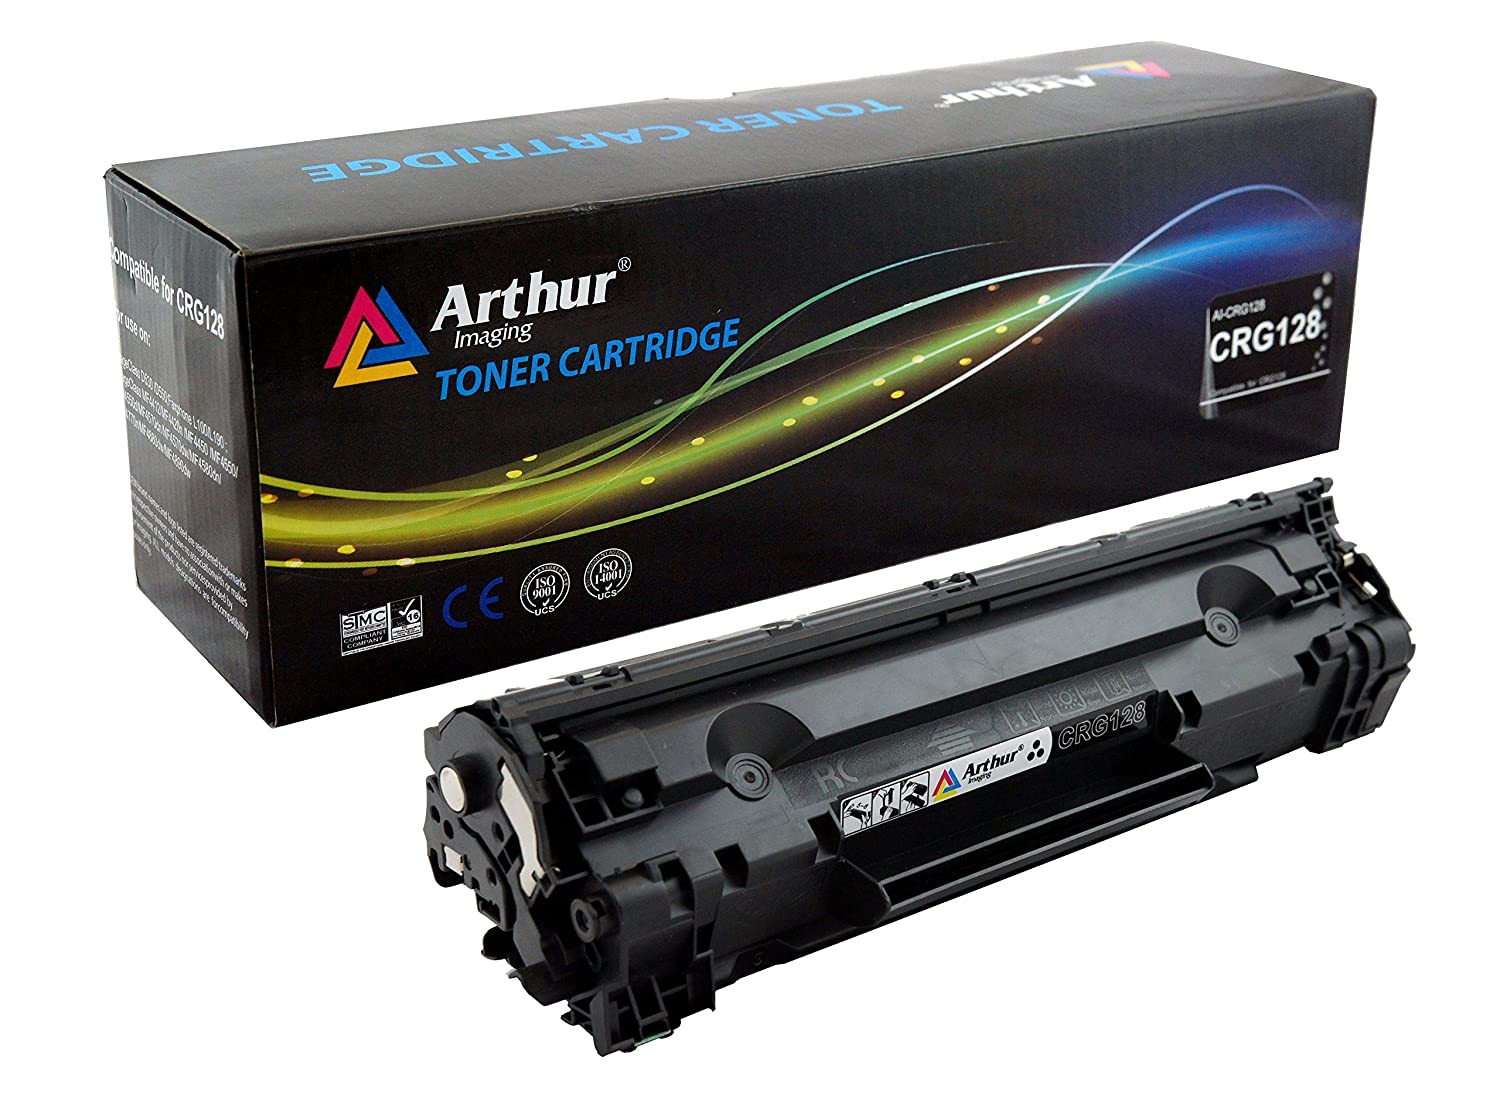 Arthur Imaging Compatible Toner Cartridge Replacement for Canon CRG128 (3500B001AA) (Black, 1-Pack)